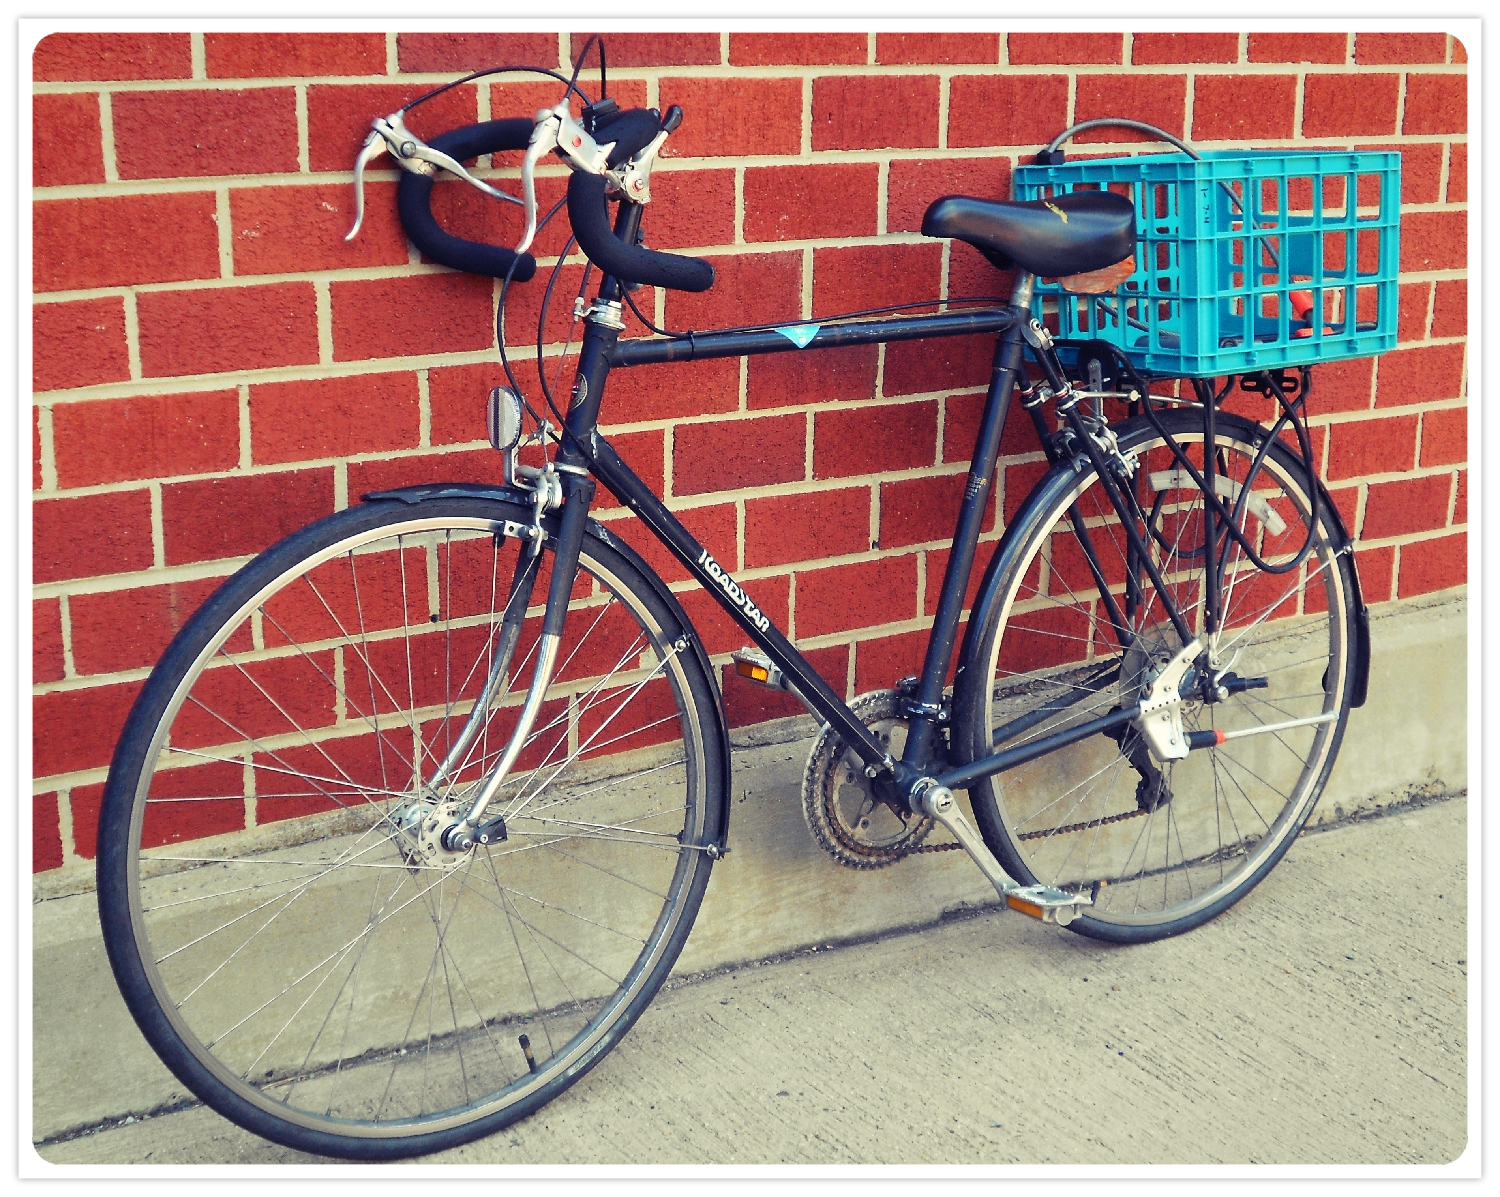 I think the teal milk crate really gives the bike a certain roguish charm.